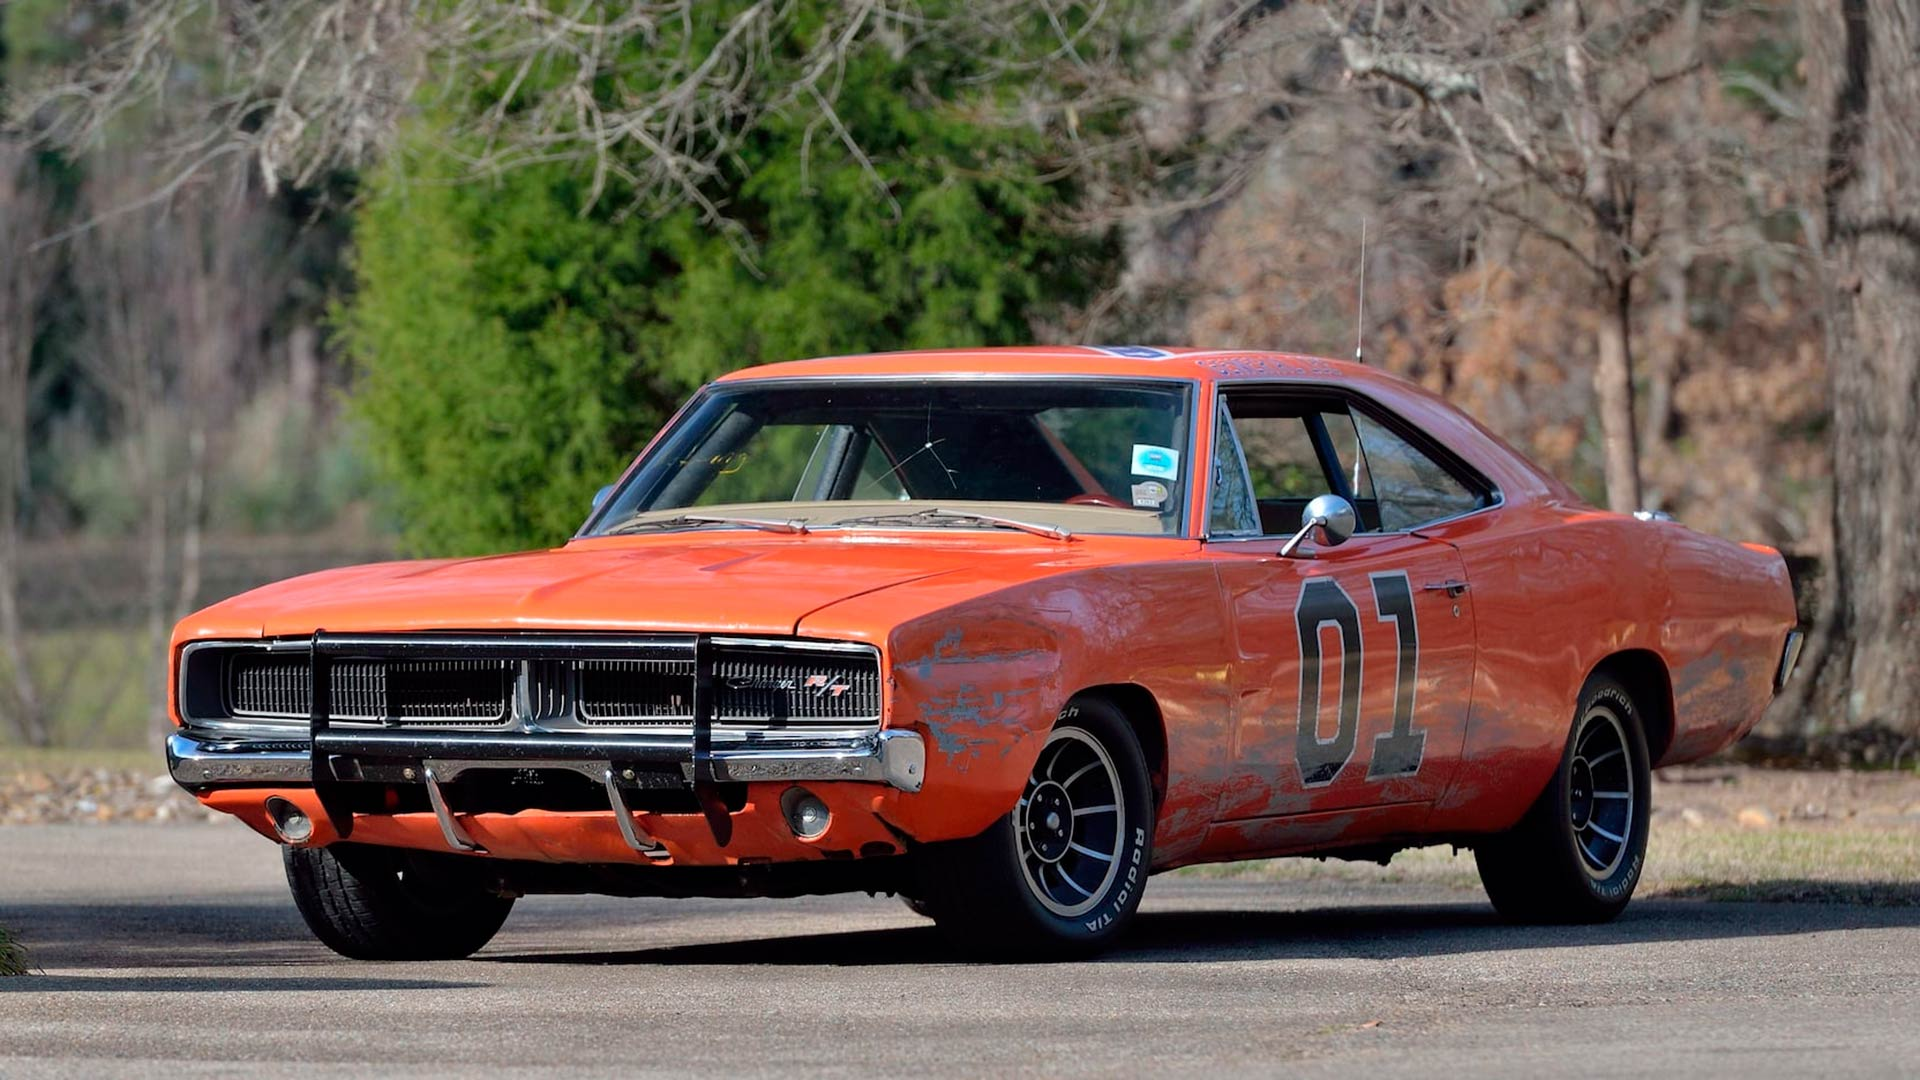 Mecum Indy 2019 Dukes of Hazzard Dodge Charger